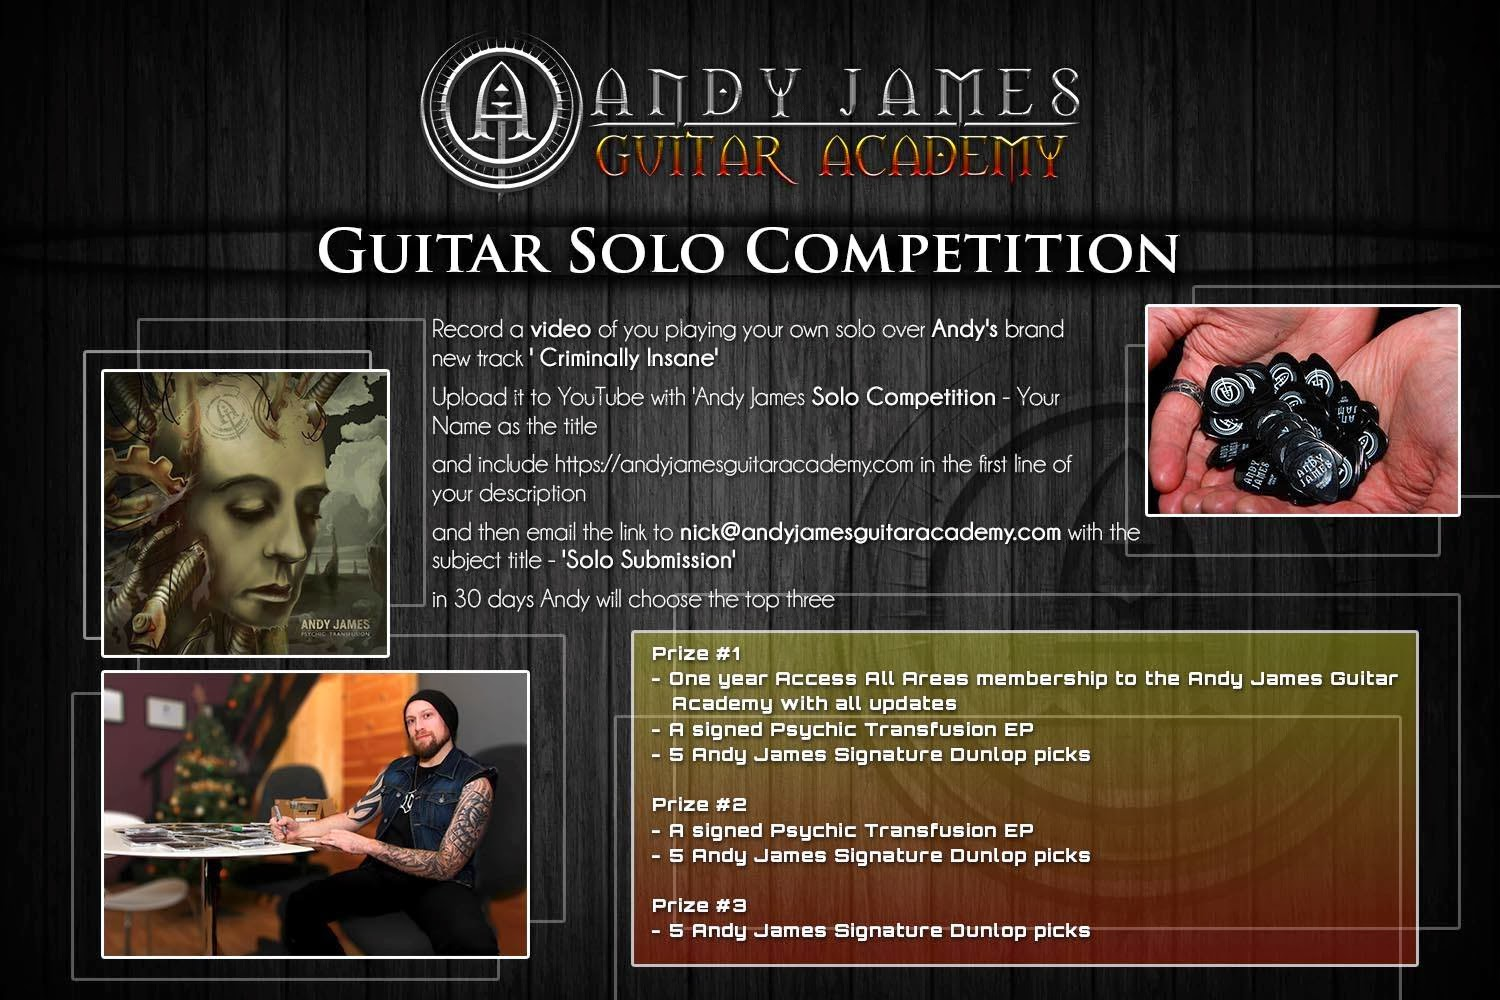 Andy James: Its competition time!!! Win free stuff of huge